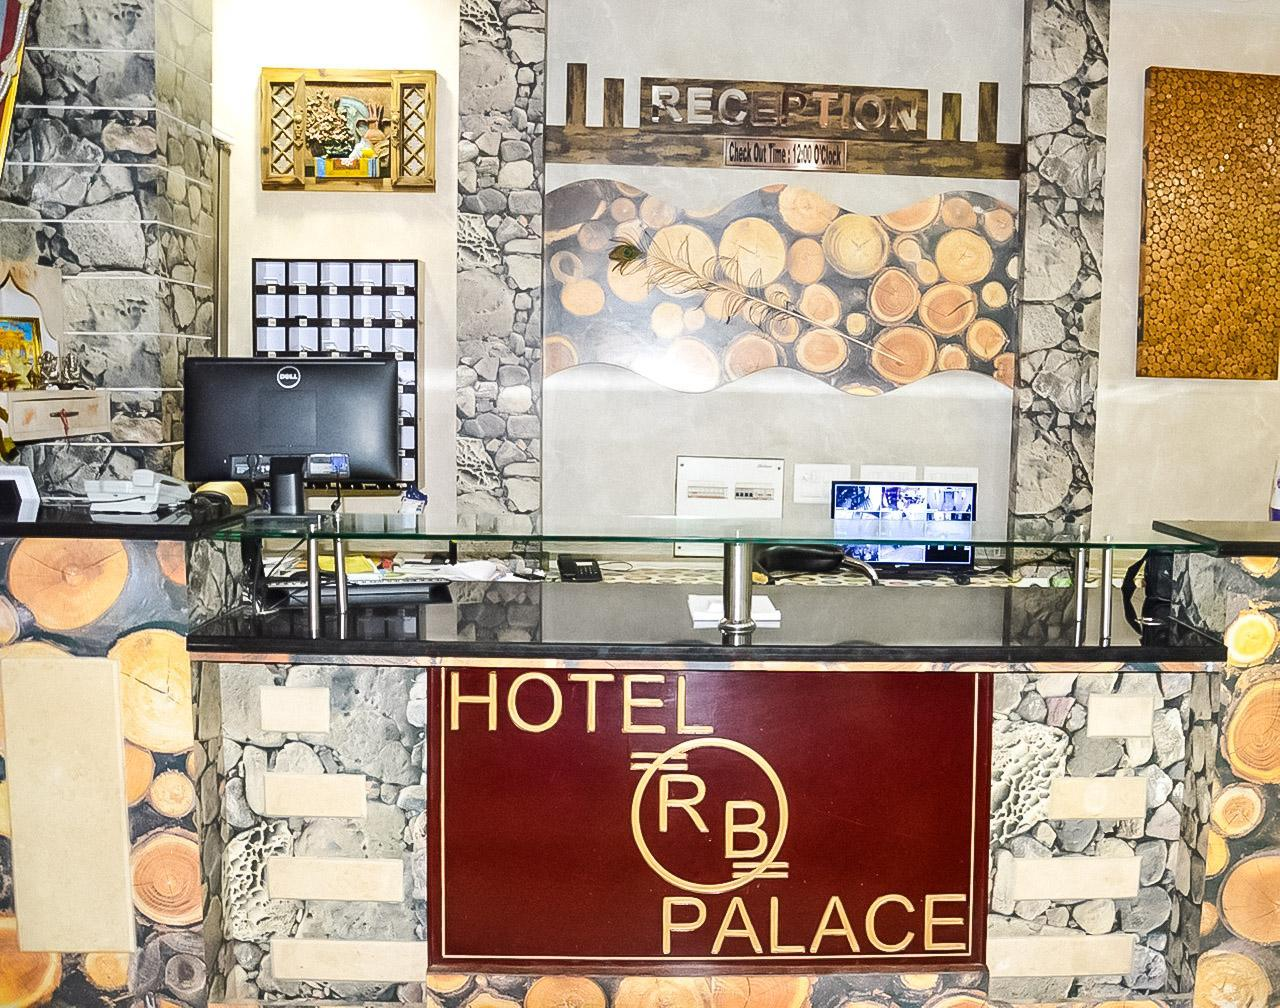 Hotel RB Palace